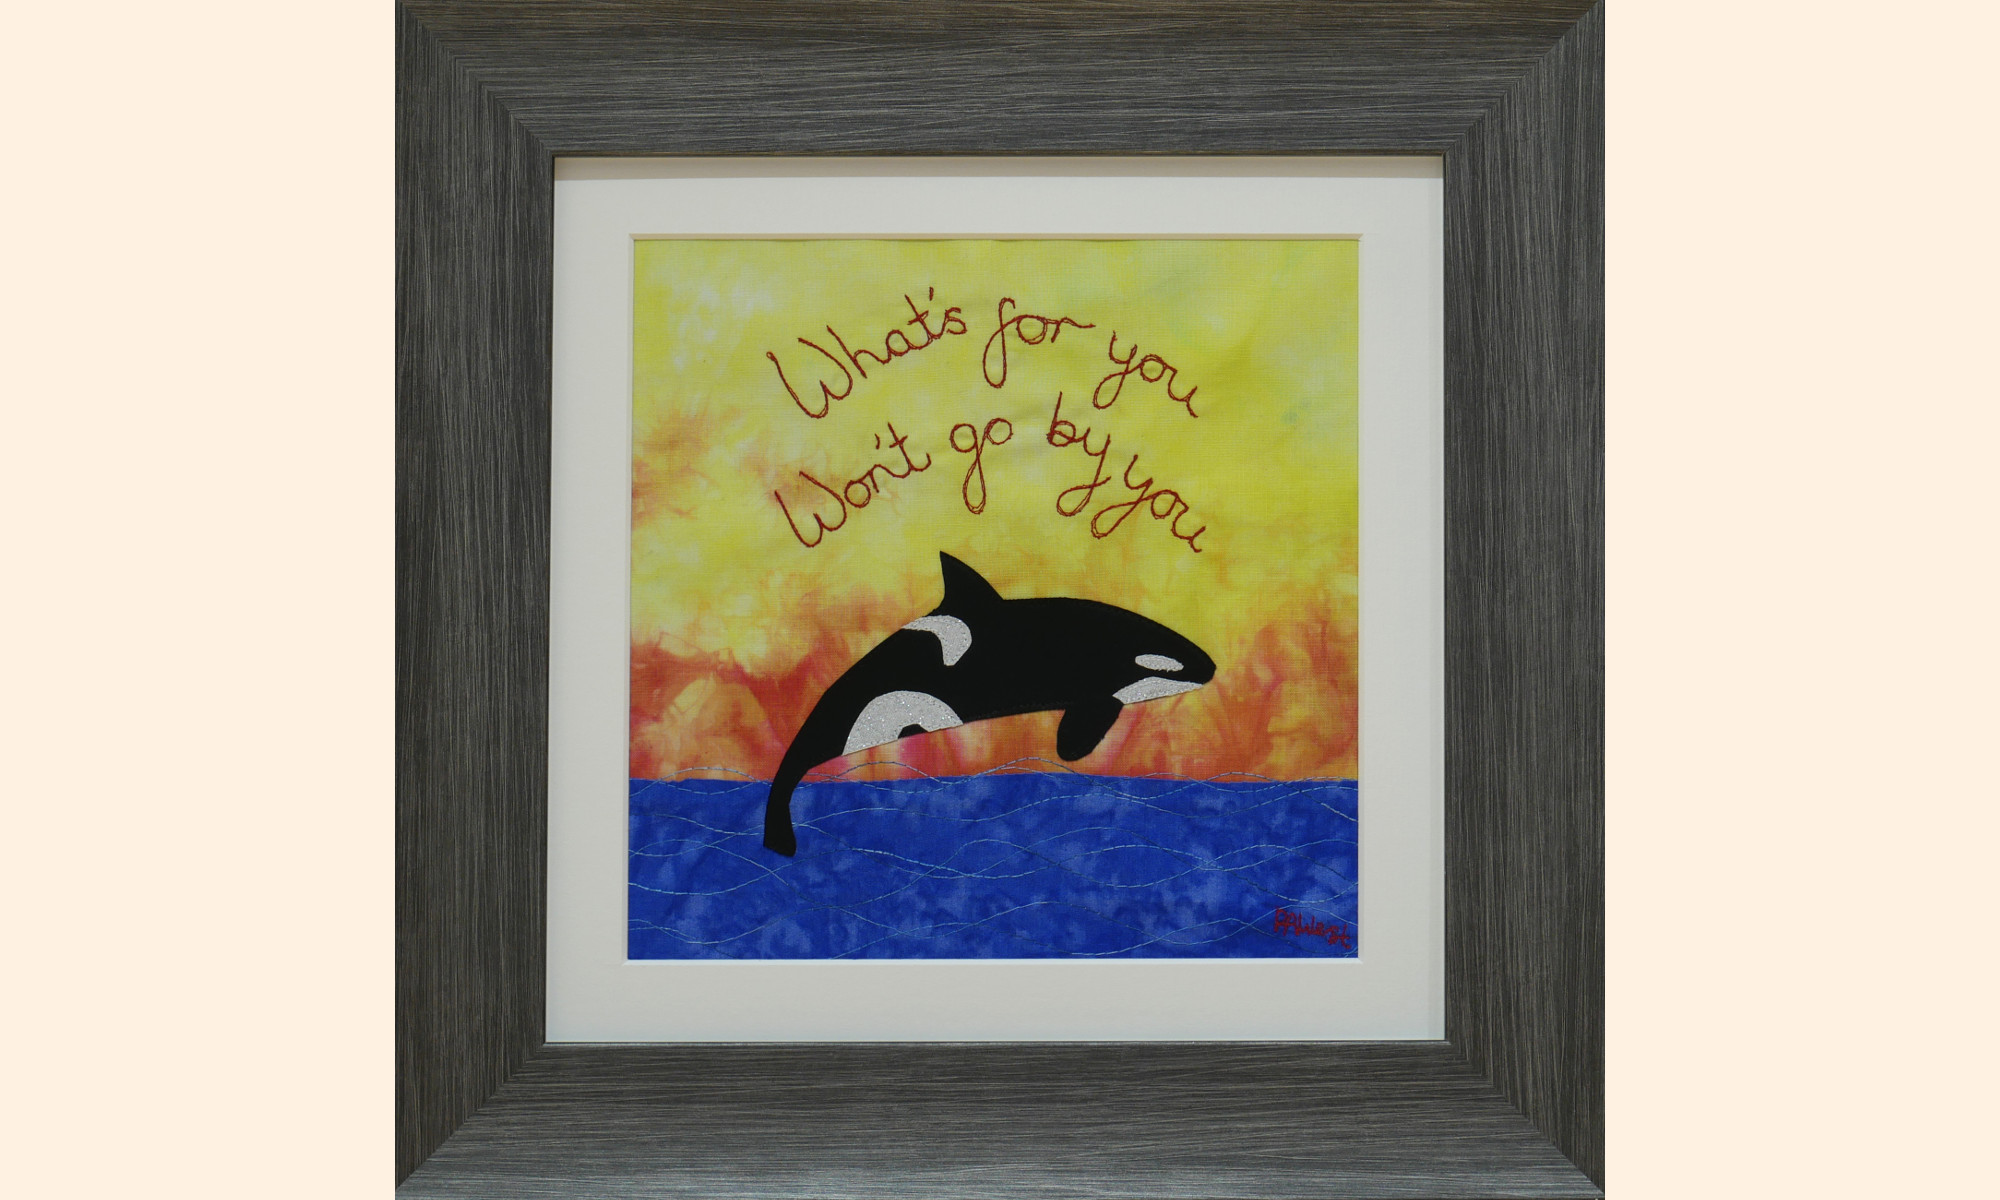 Framed picture of an Orca and sea on a bright background.